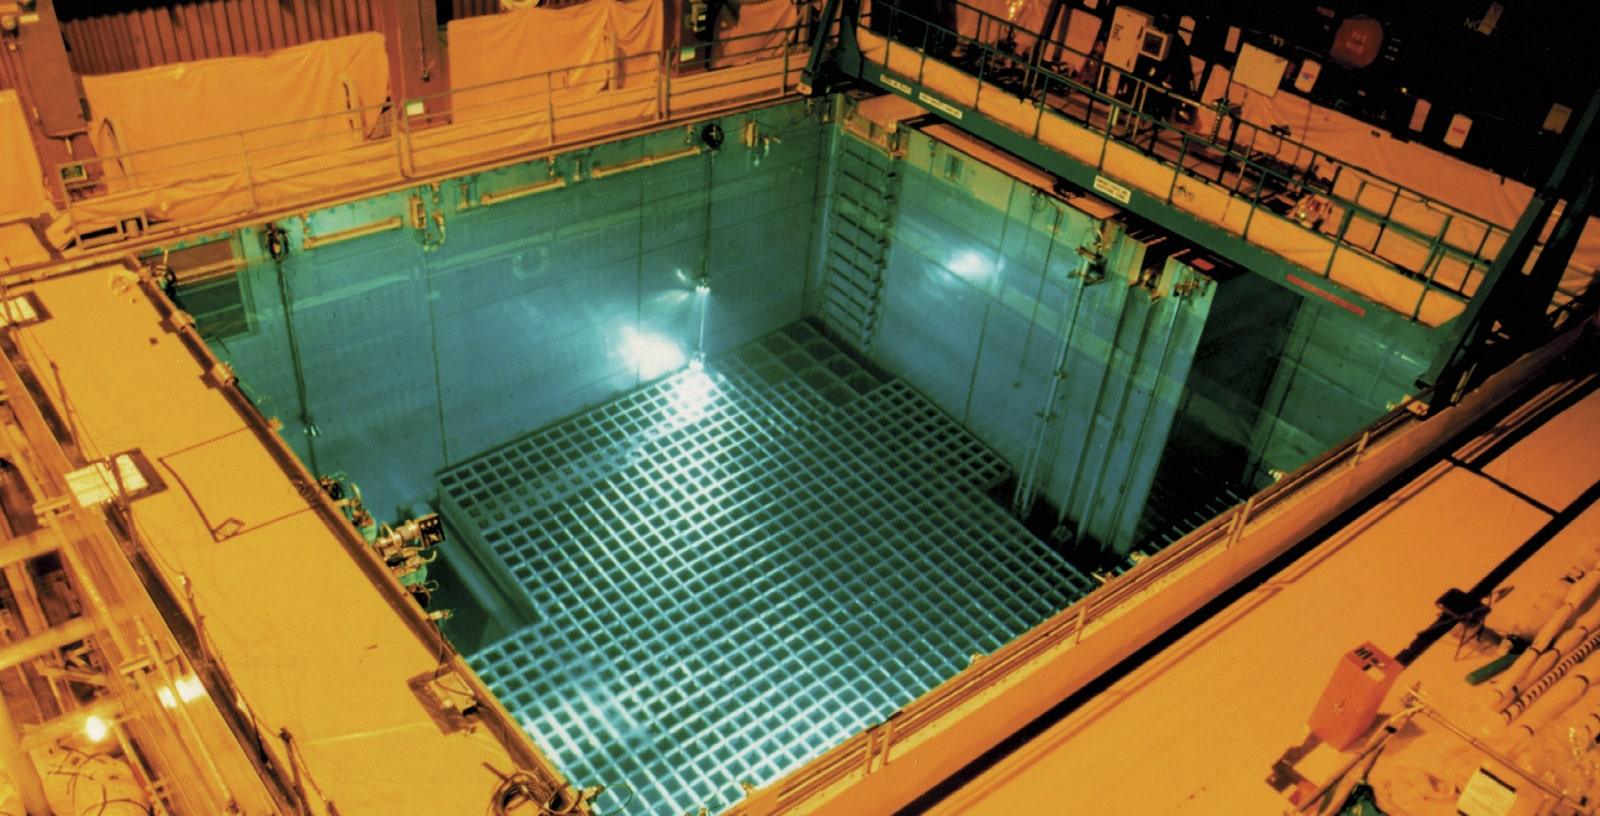 IDOM_Nuclear_Services_racks_spent_fuel_pool_Olkiluoto_Finland_Picture_by_NRC